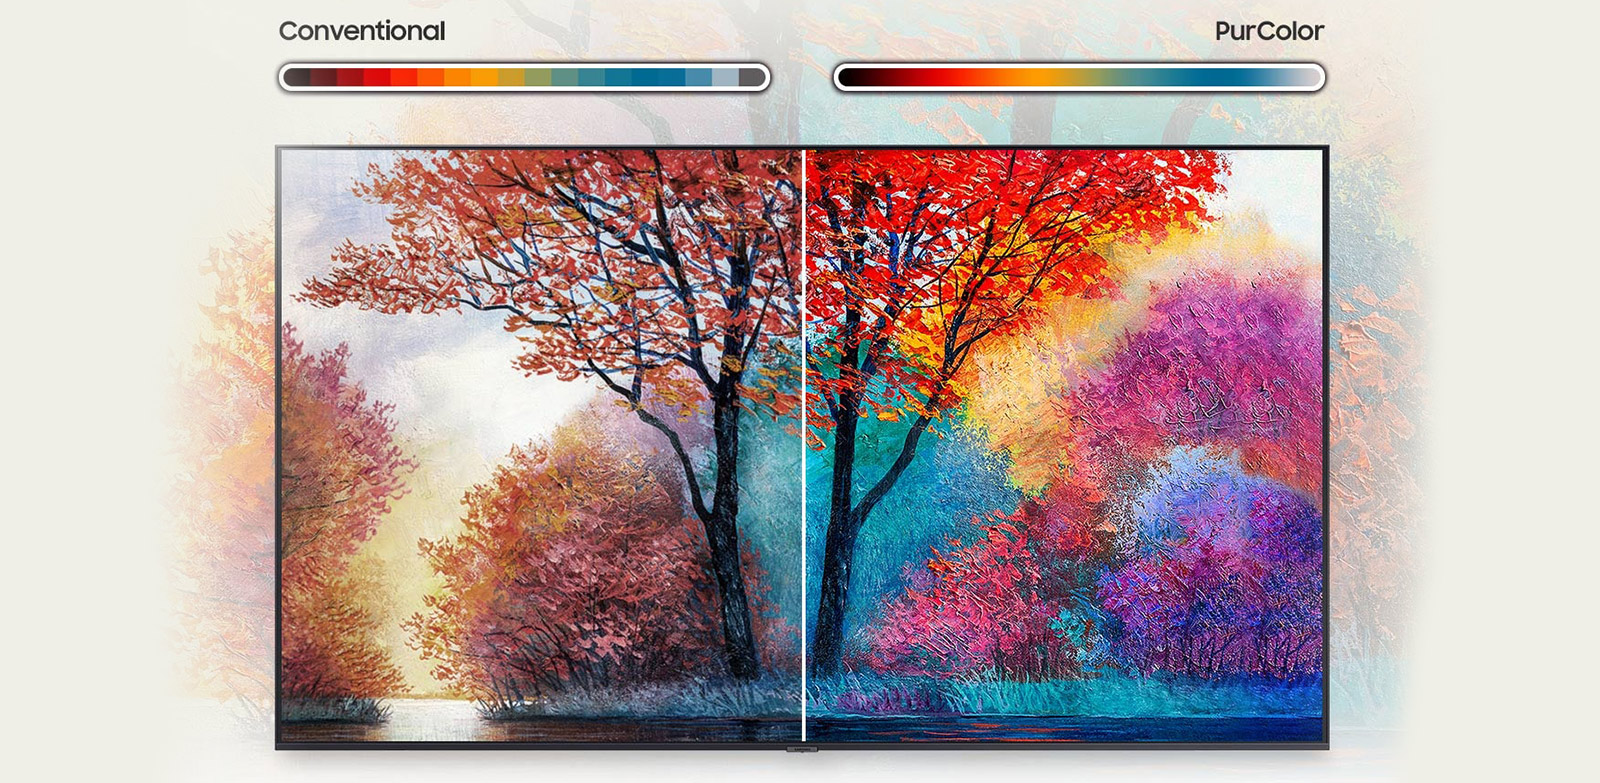 Fine tuned color for a vibrant, lifelike picture PurColor -Extension-Images_appliance_Modular